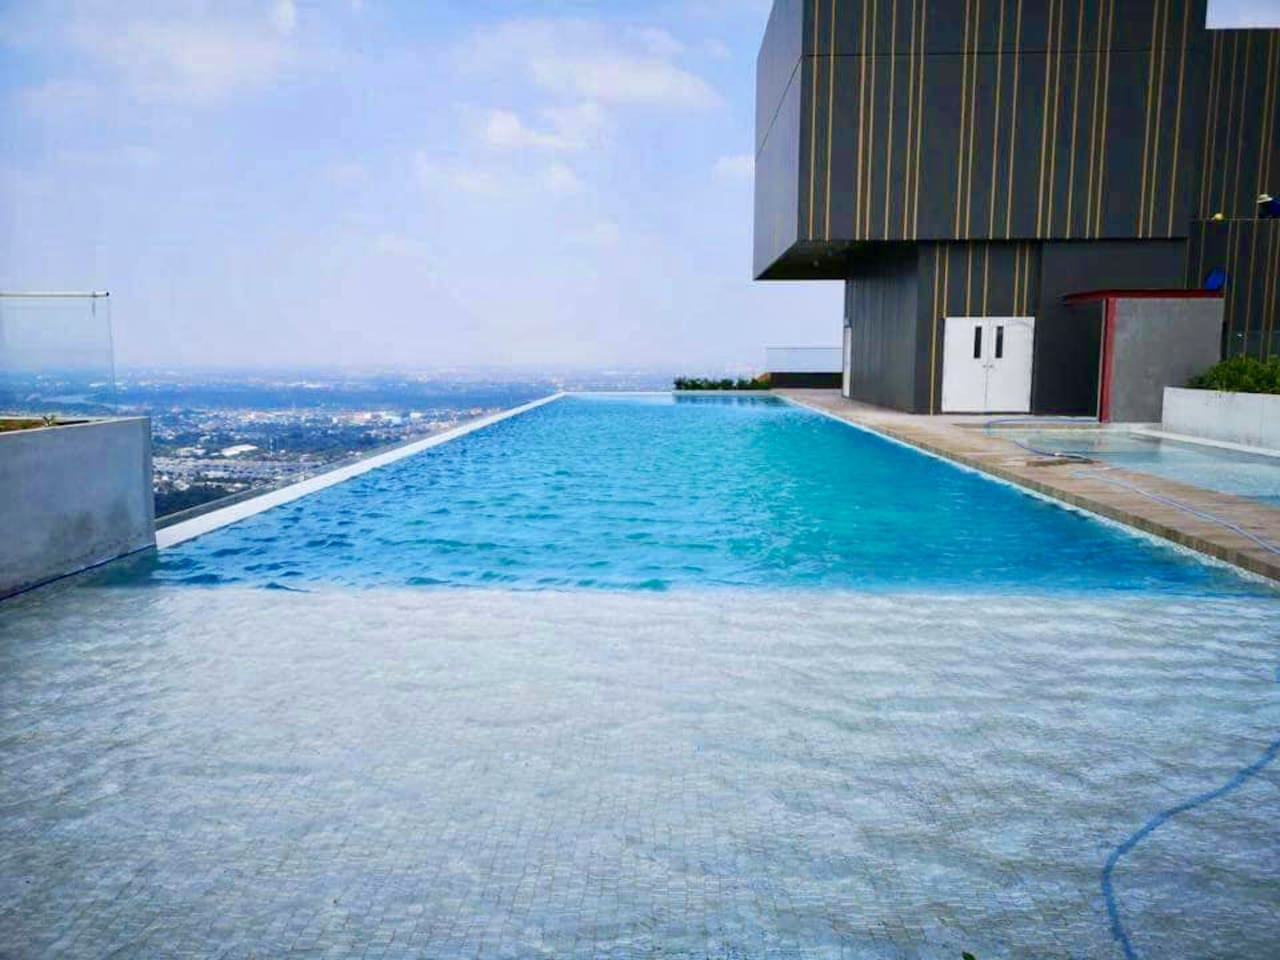 Rooftop outdoor swimming pool with panorama view on 56th floor.